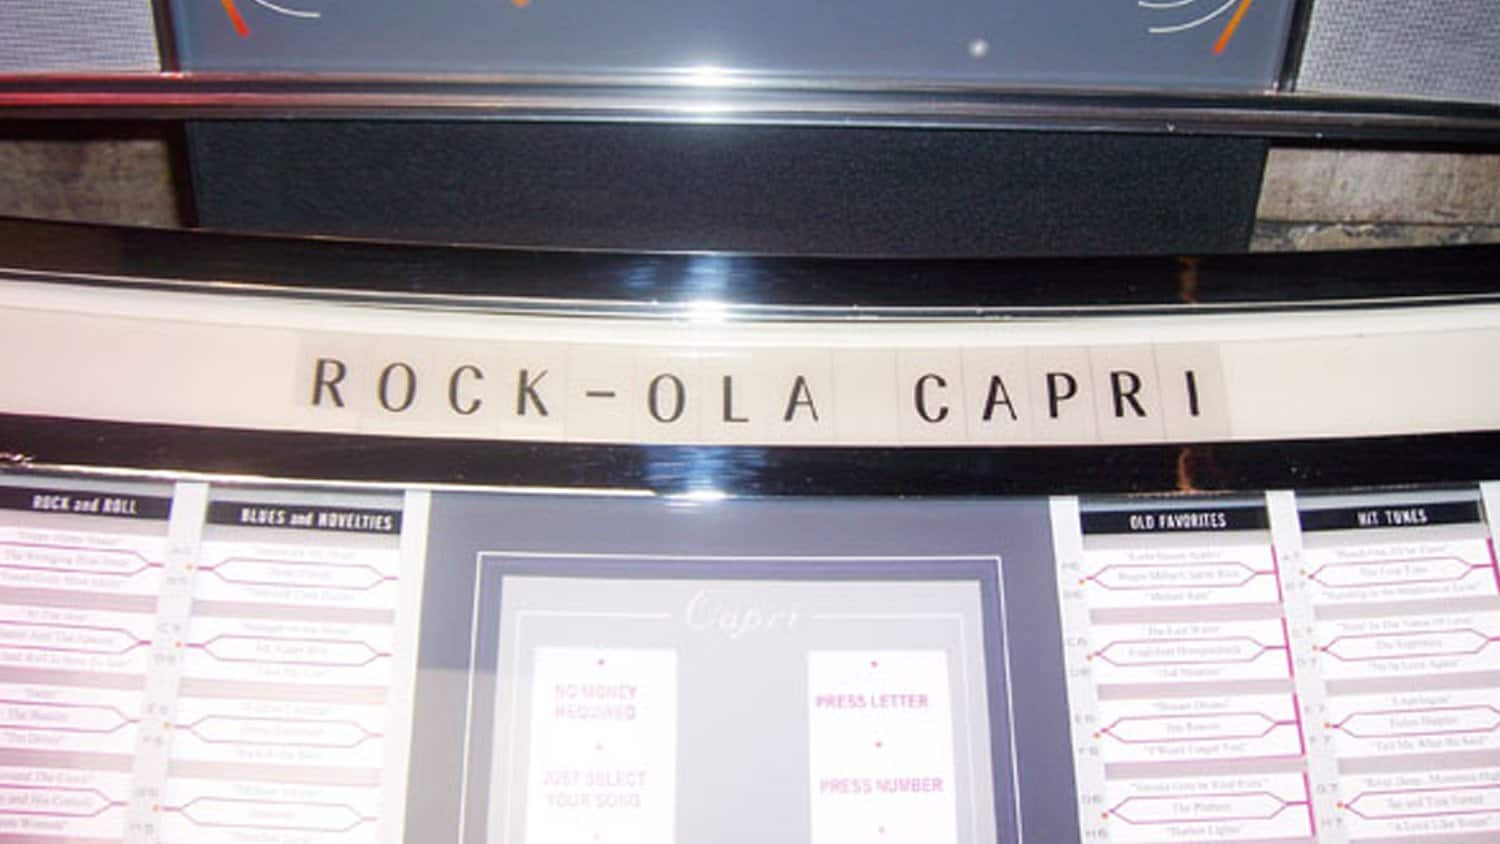 Rock-ola-Capri-Jukebox-with-audio-interpretation-by-Blackbox-av